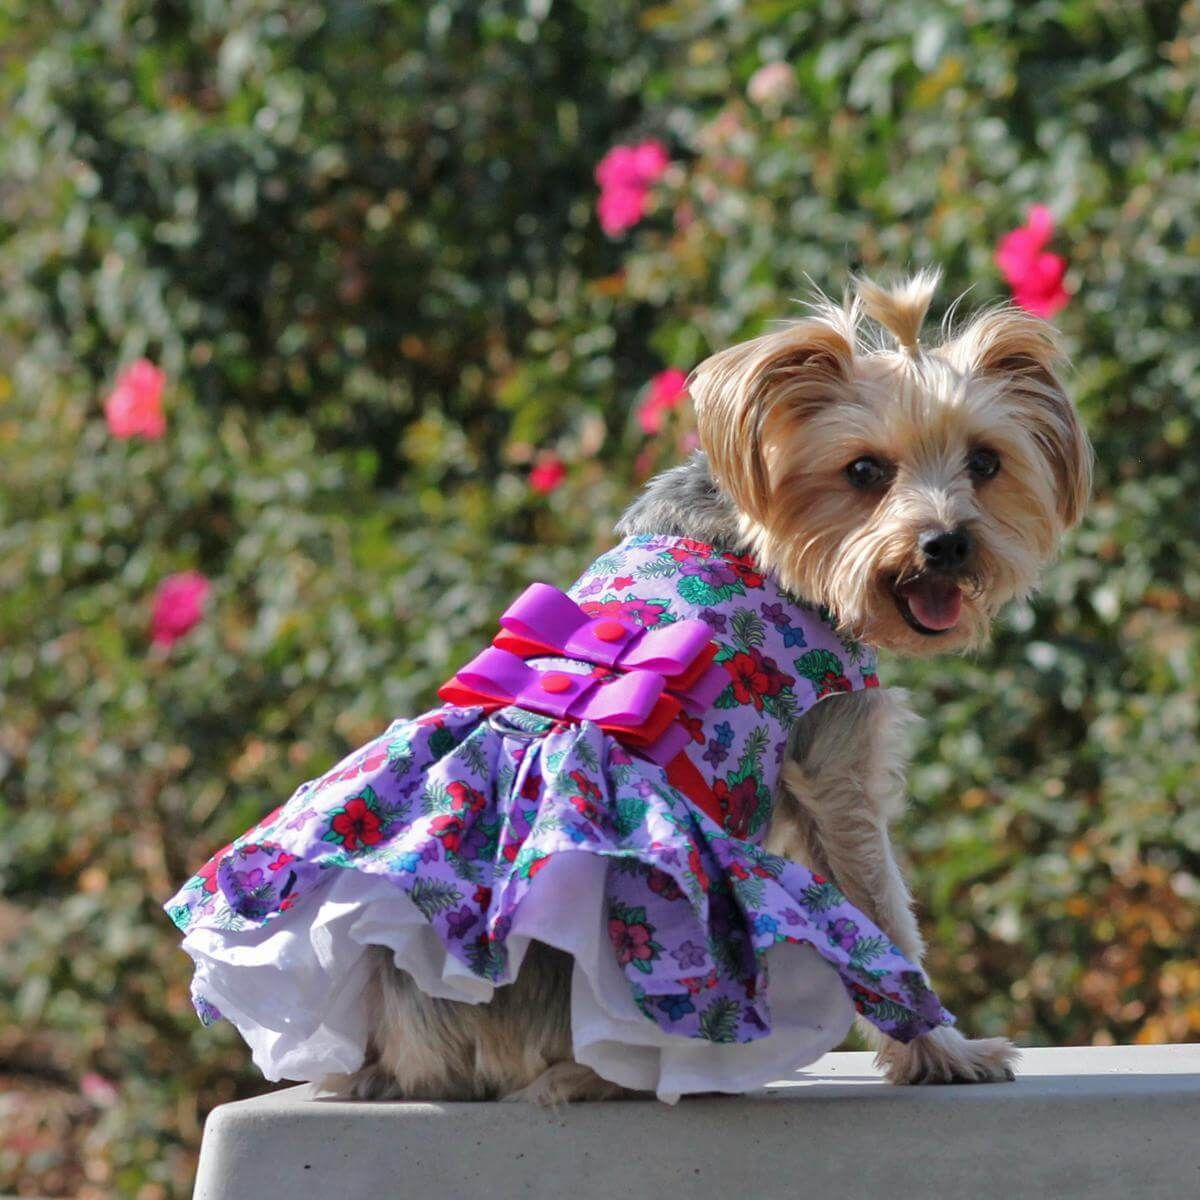 4e5b48214a02 If flower patterns are your thing, this Purple & Red Floral dog dress may  be for you. The sleeveless bodice is accented with two matching ribbons.